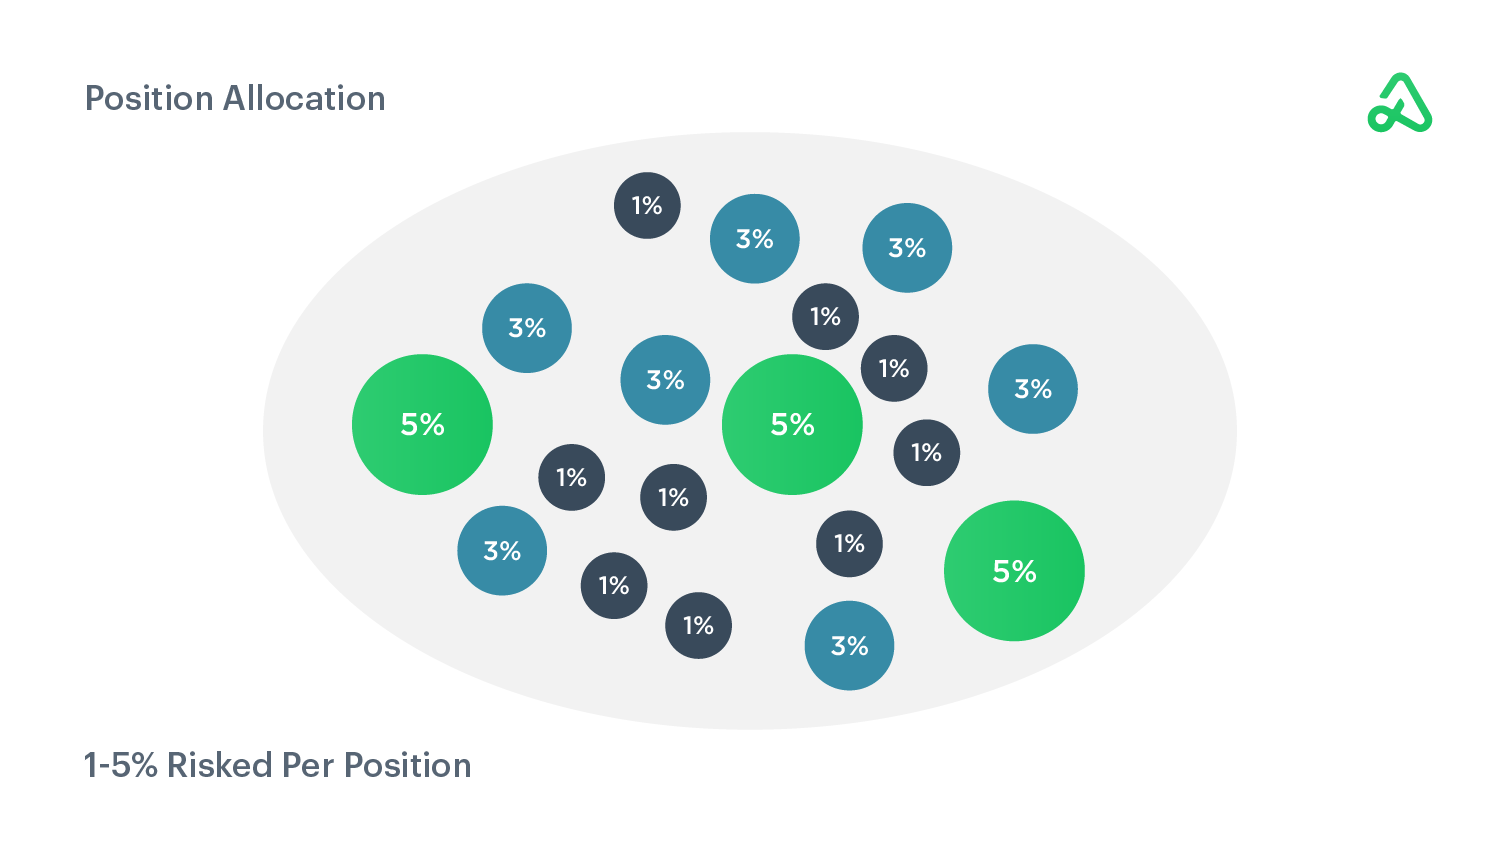 Position allocation as a percentage of account